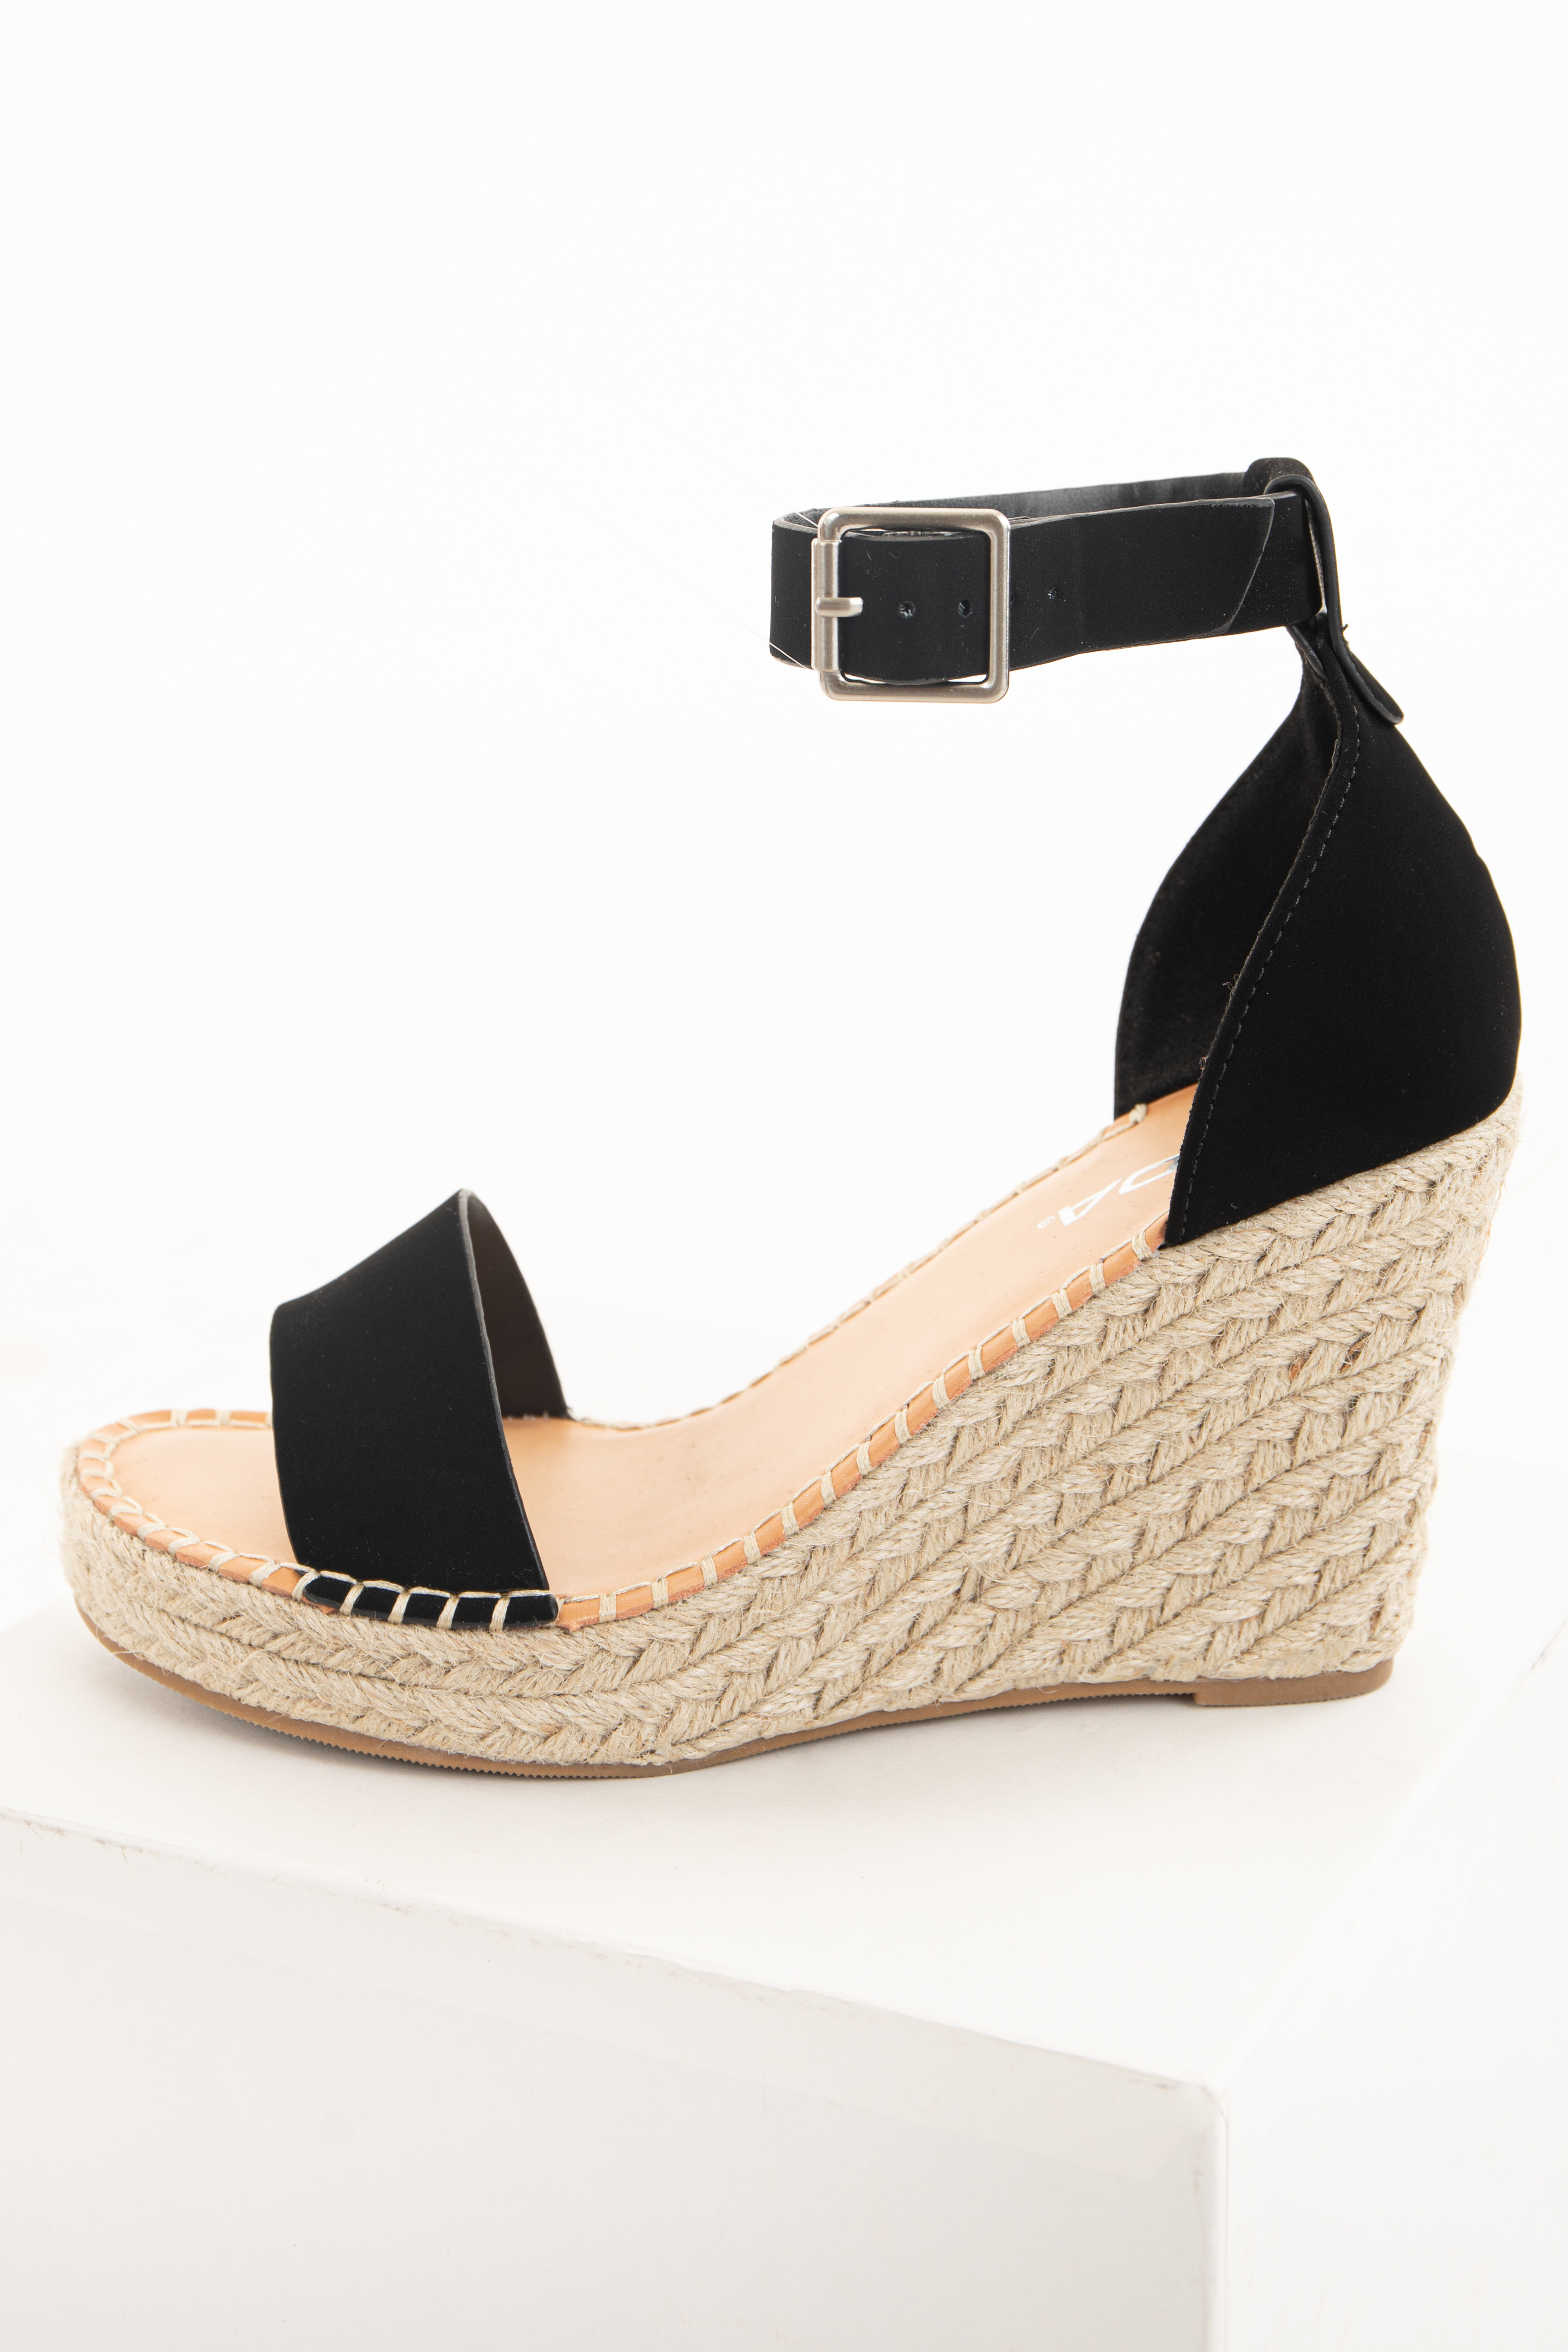 Matte Black Espadrille Wedge Sandals with Buckle